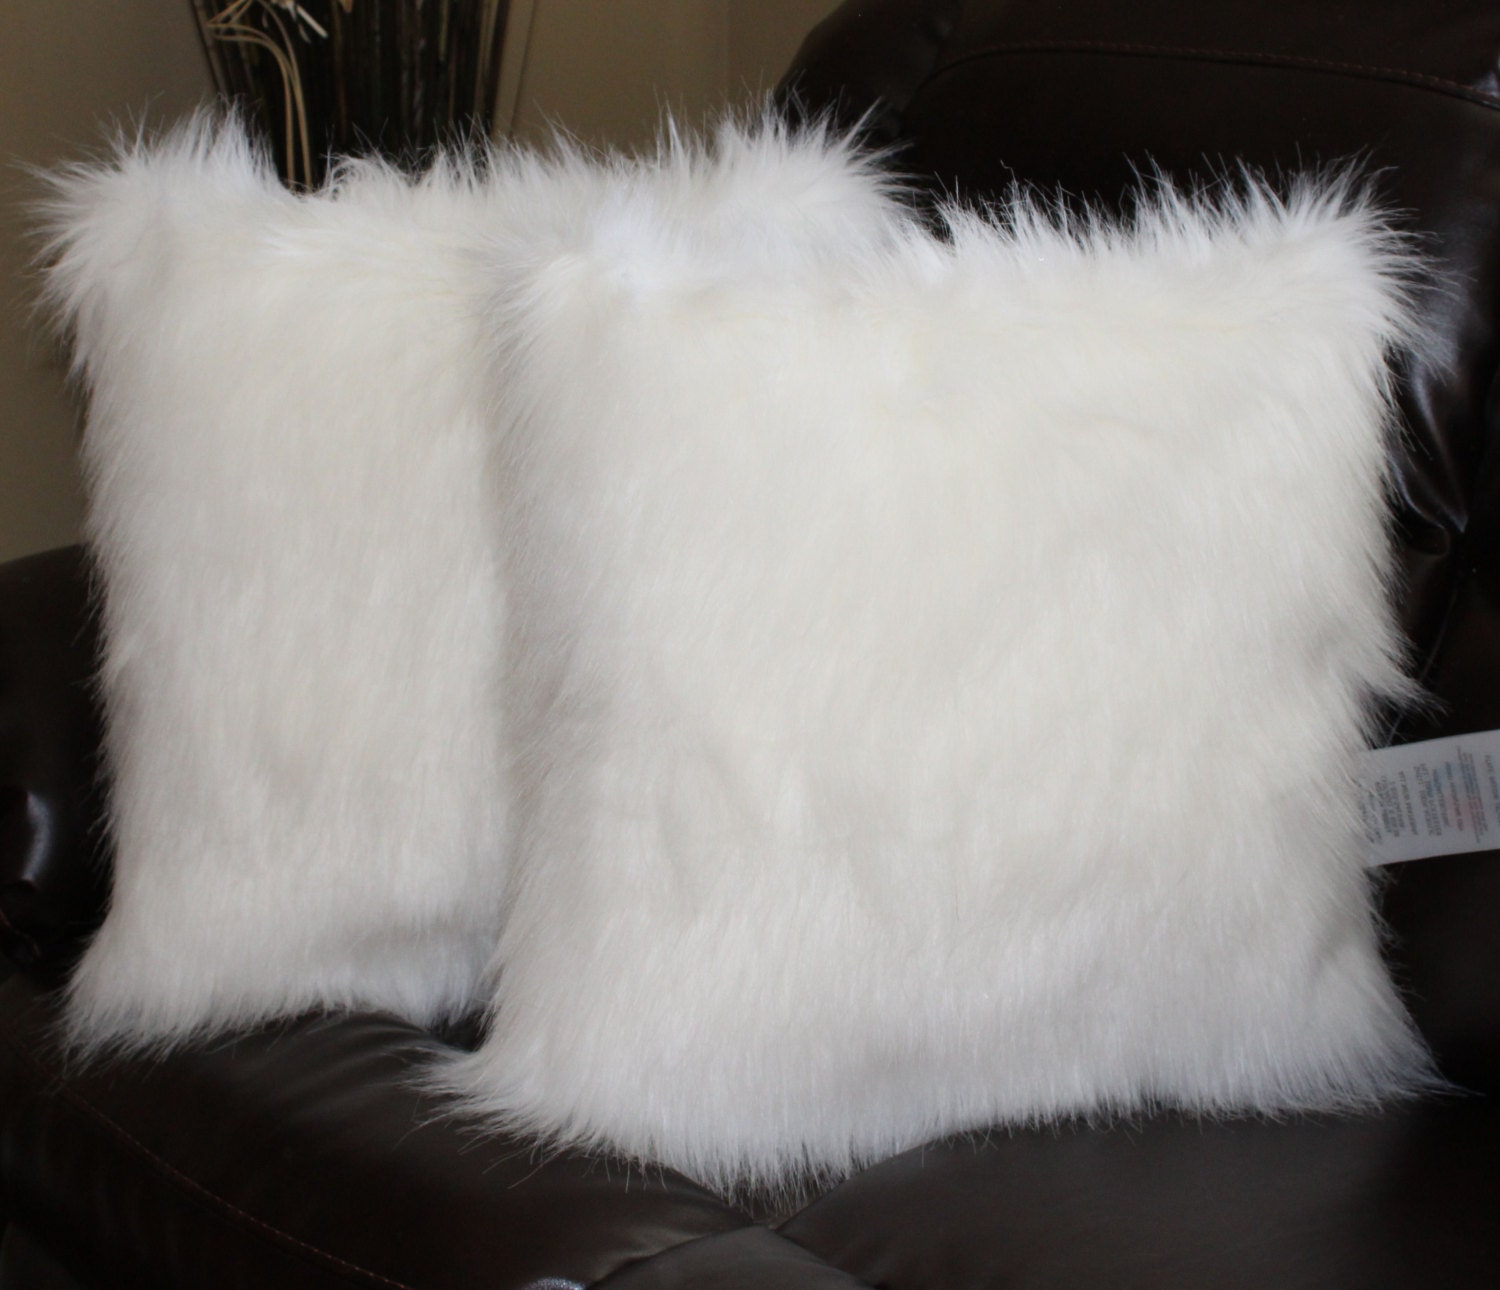 from replacement bar cream pillow stool red champagne white outdoor sheepskin sofa cushions cushion fur colors product real sheep